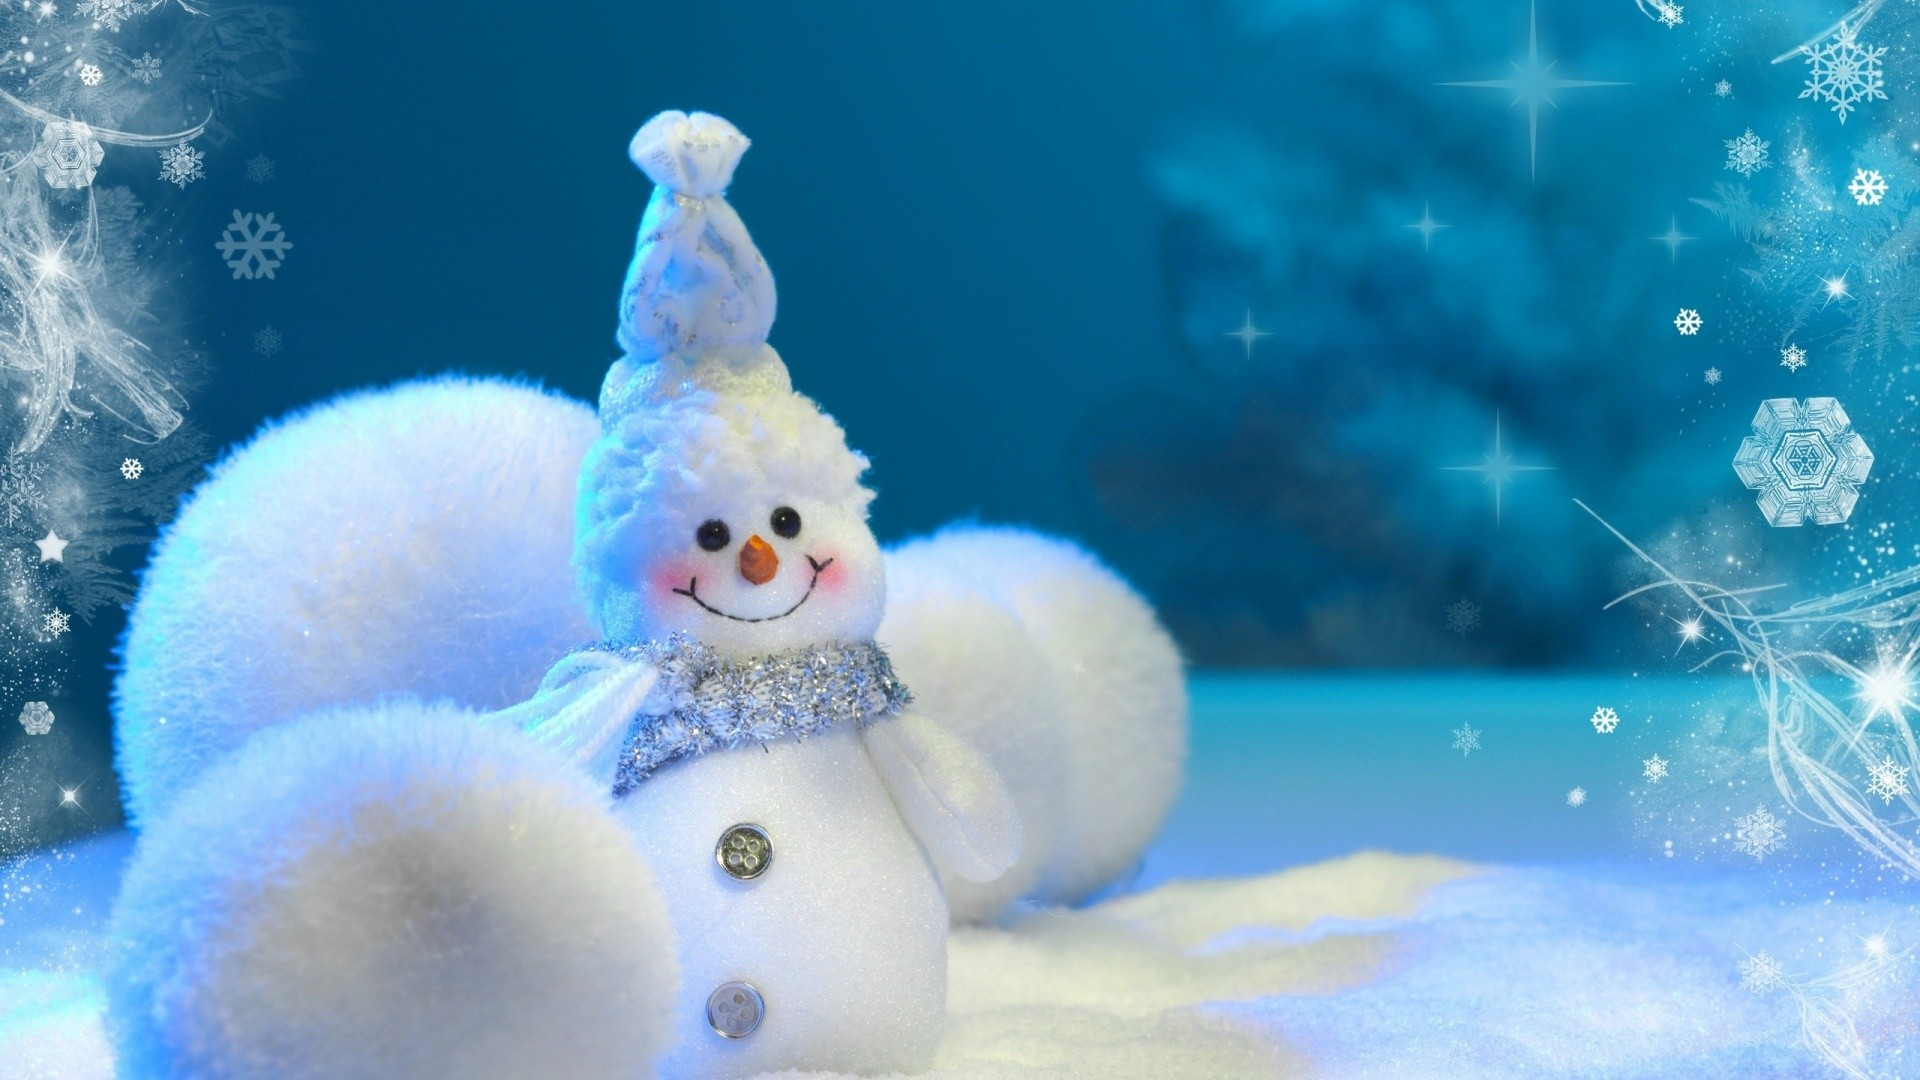 snowman wallpaper for computer (58+ images)